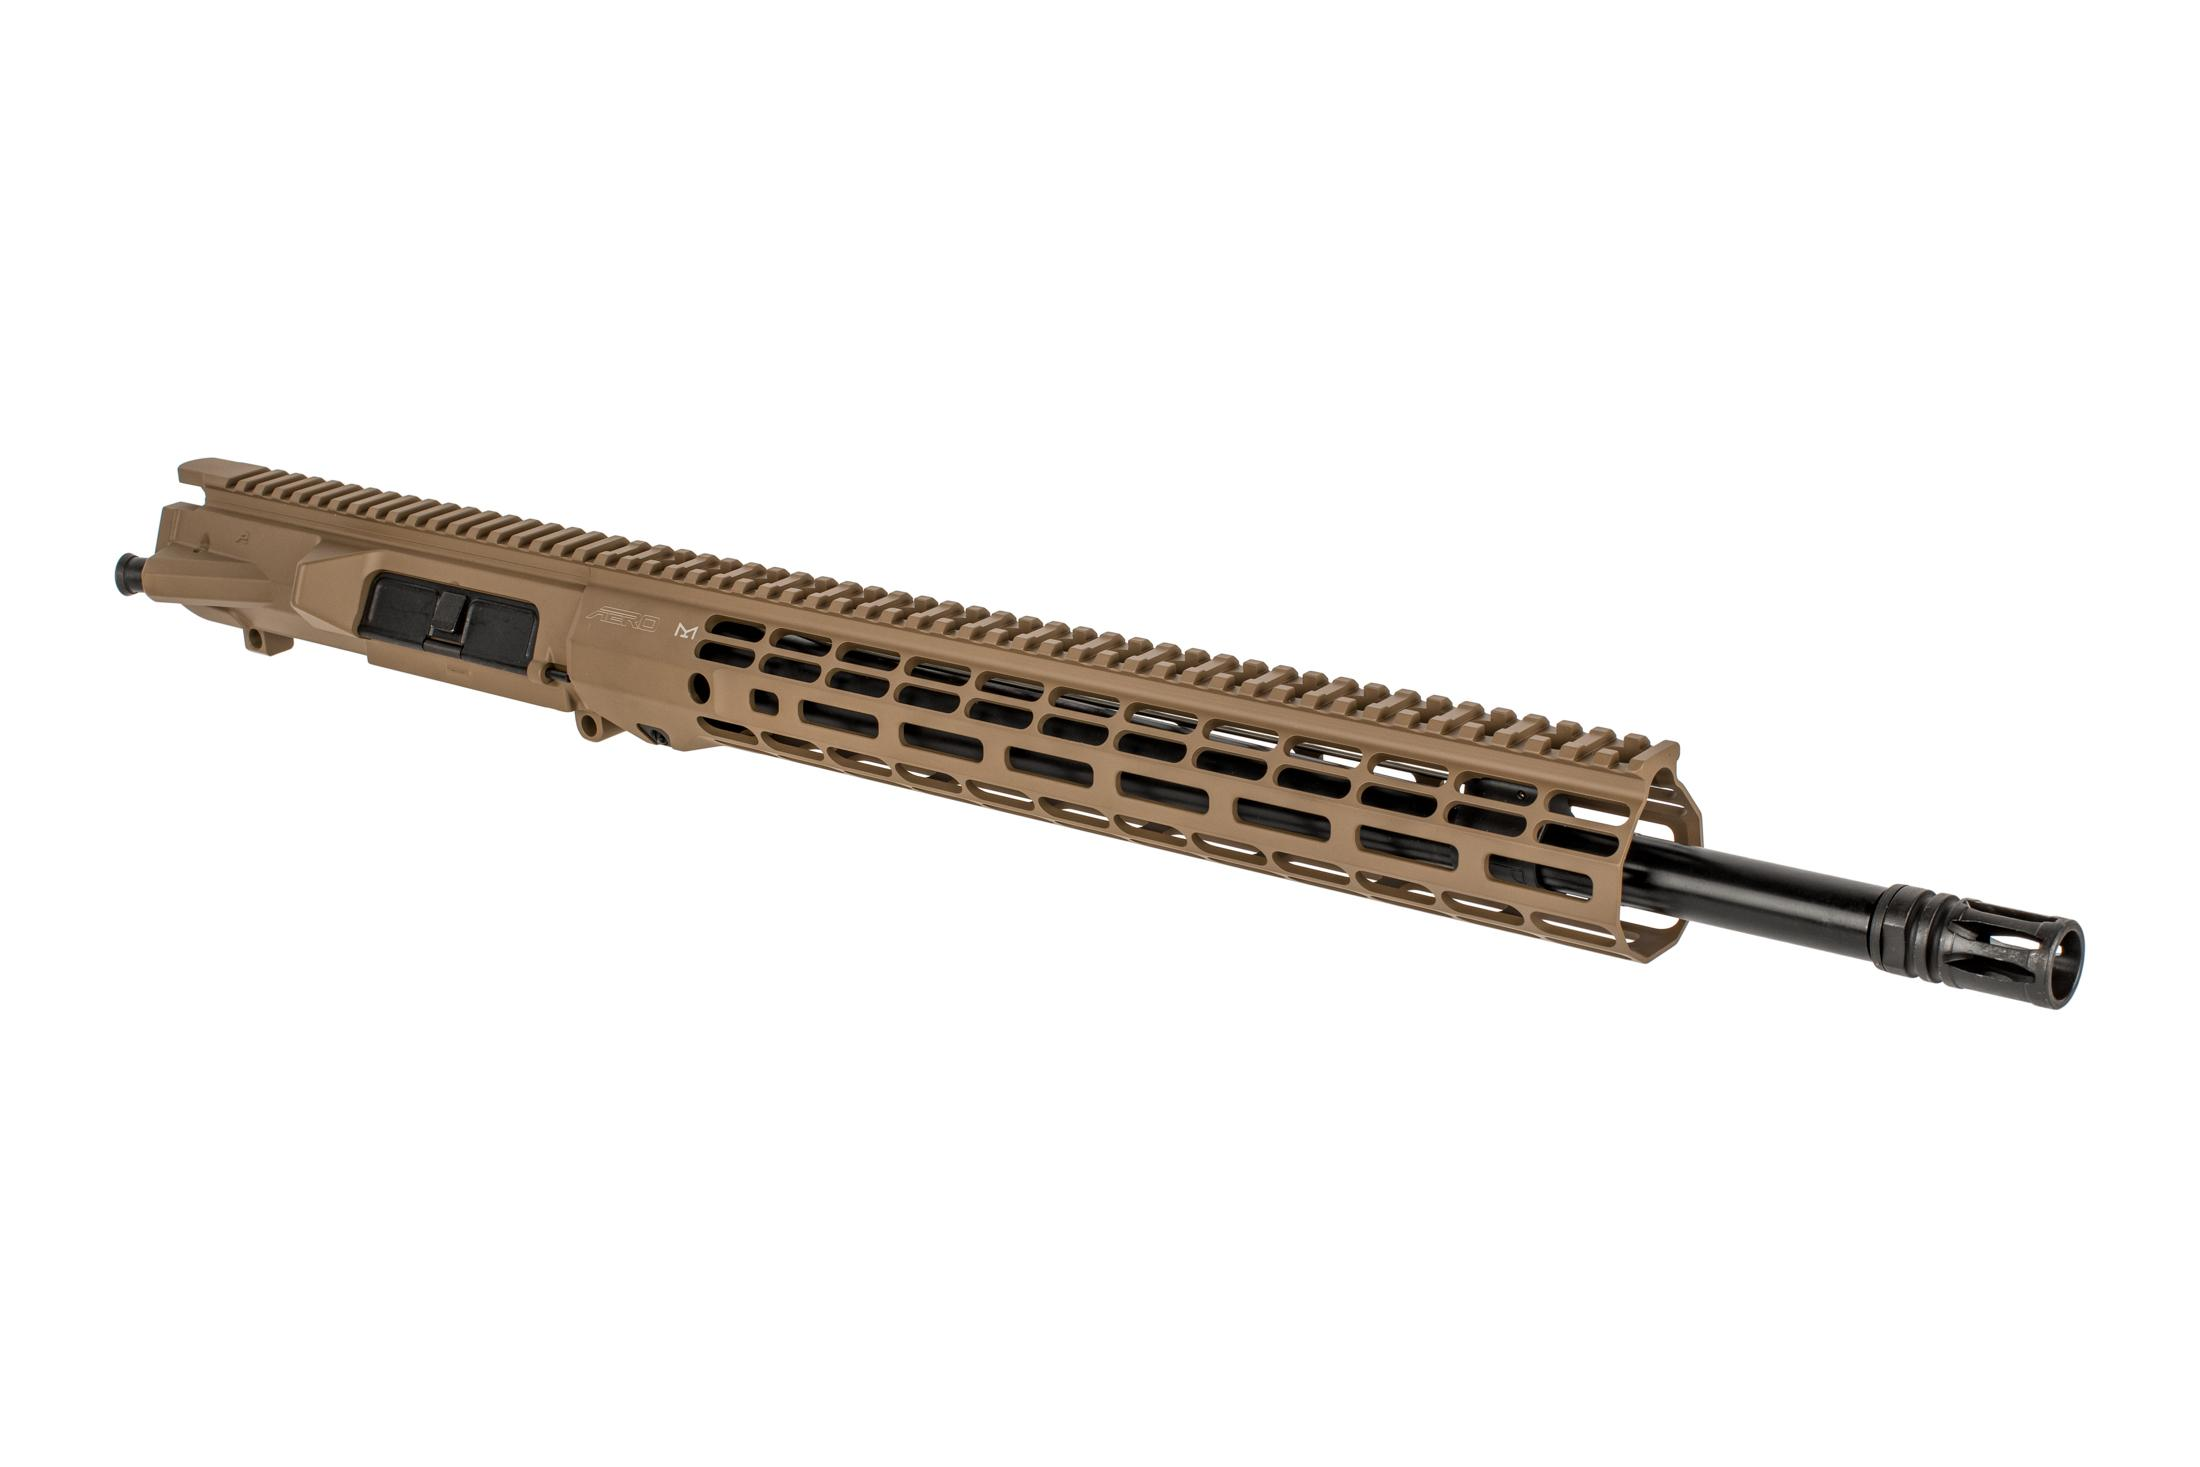 Aero Precision 18 FDE M5 barreled upper receiver with .308 chamber, mid-length gas system, and Atlas R-ONE M-LOK rail.